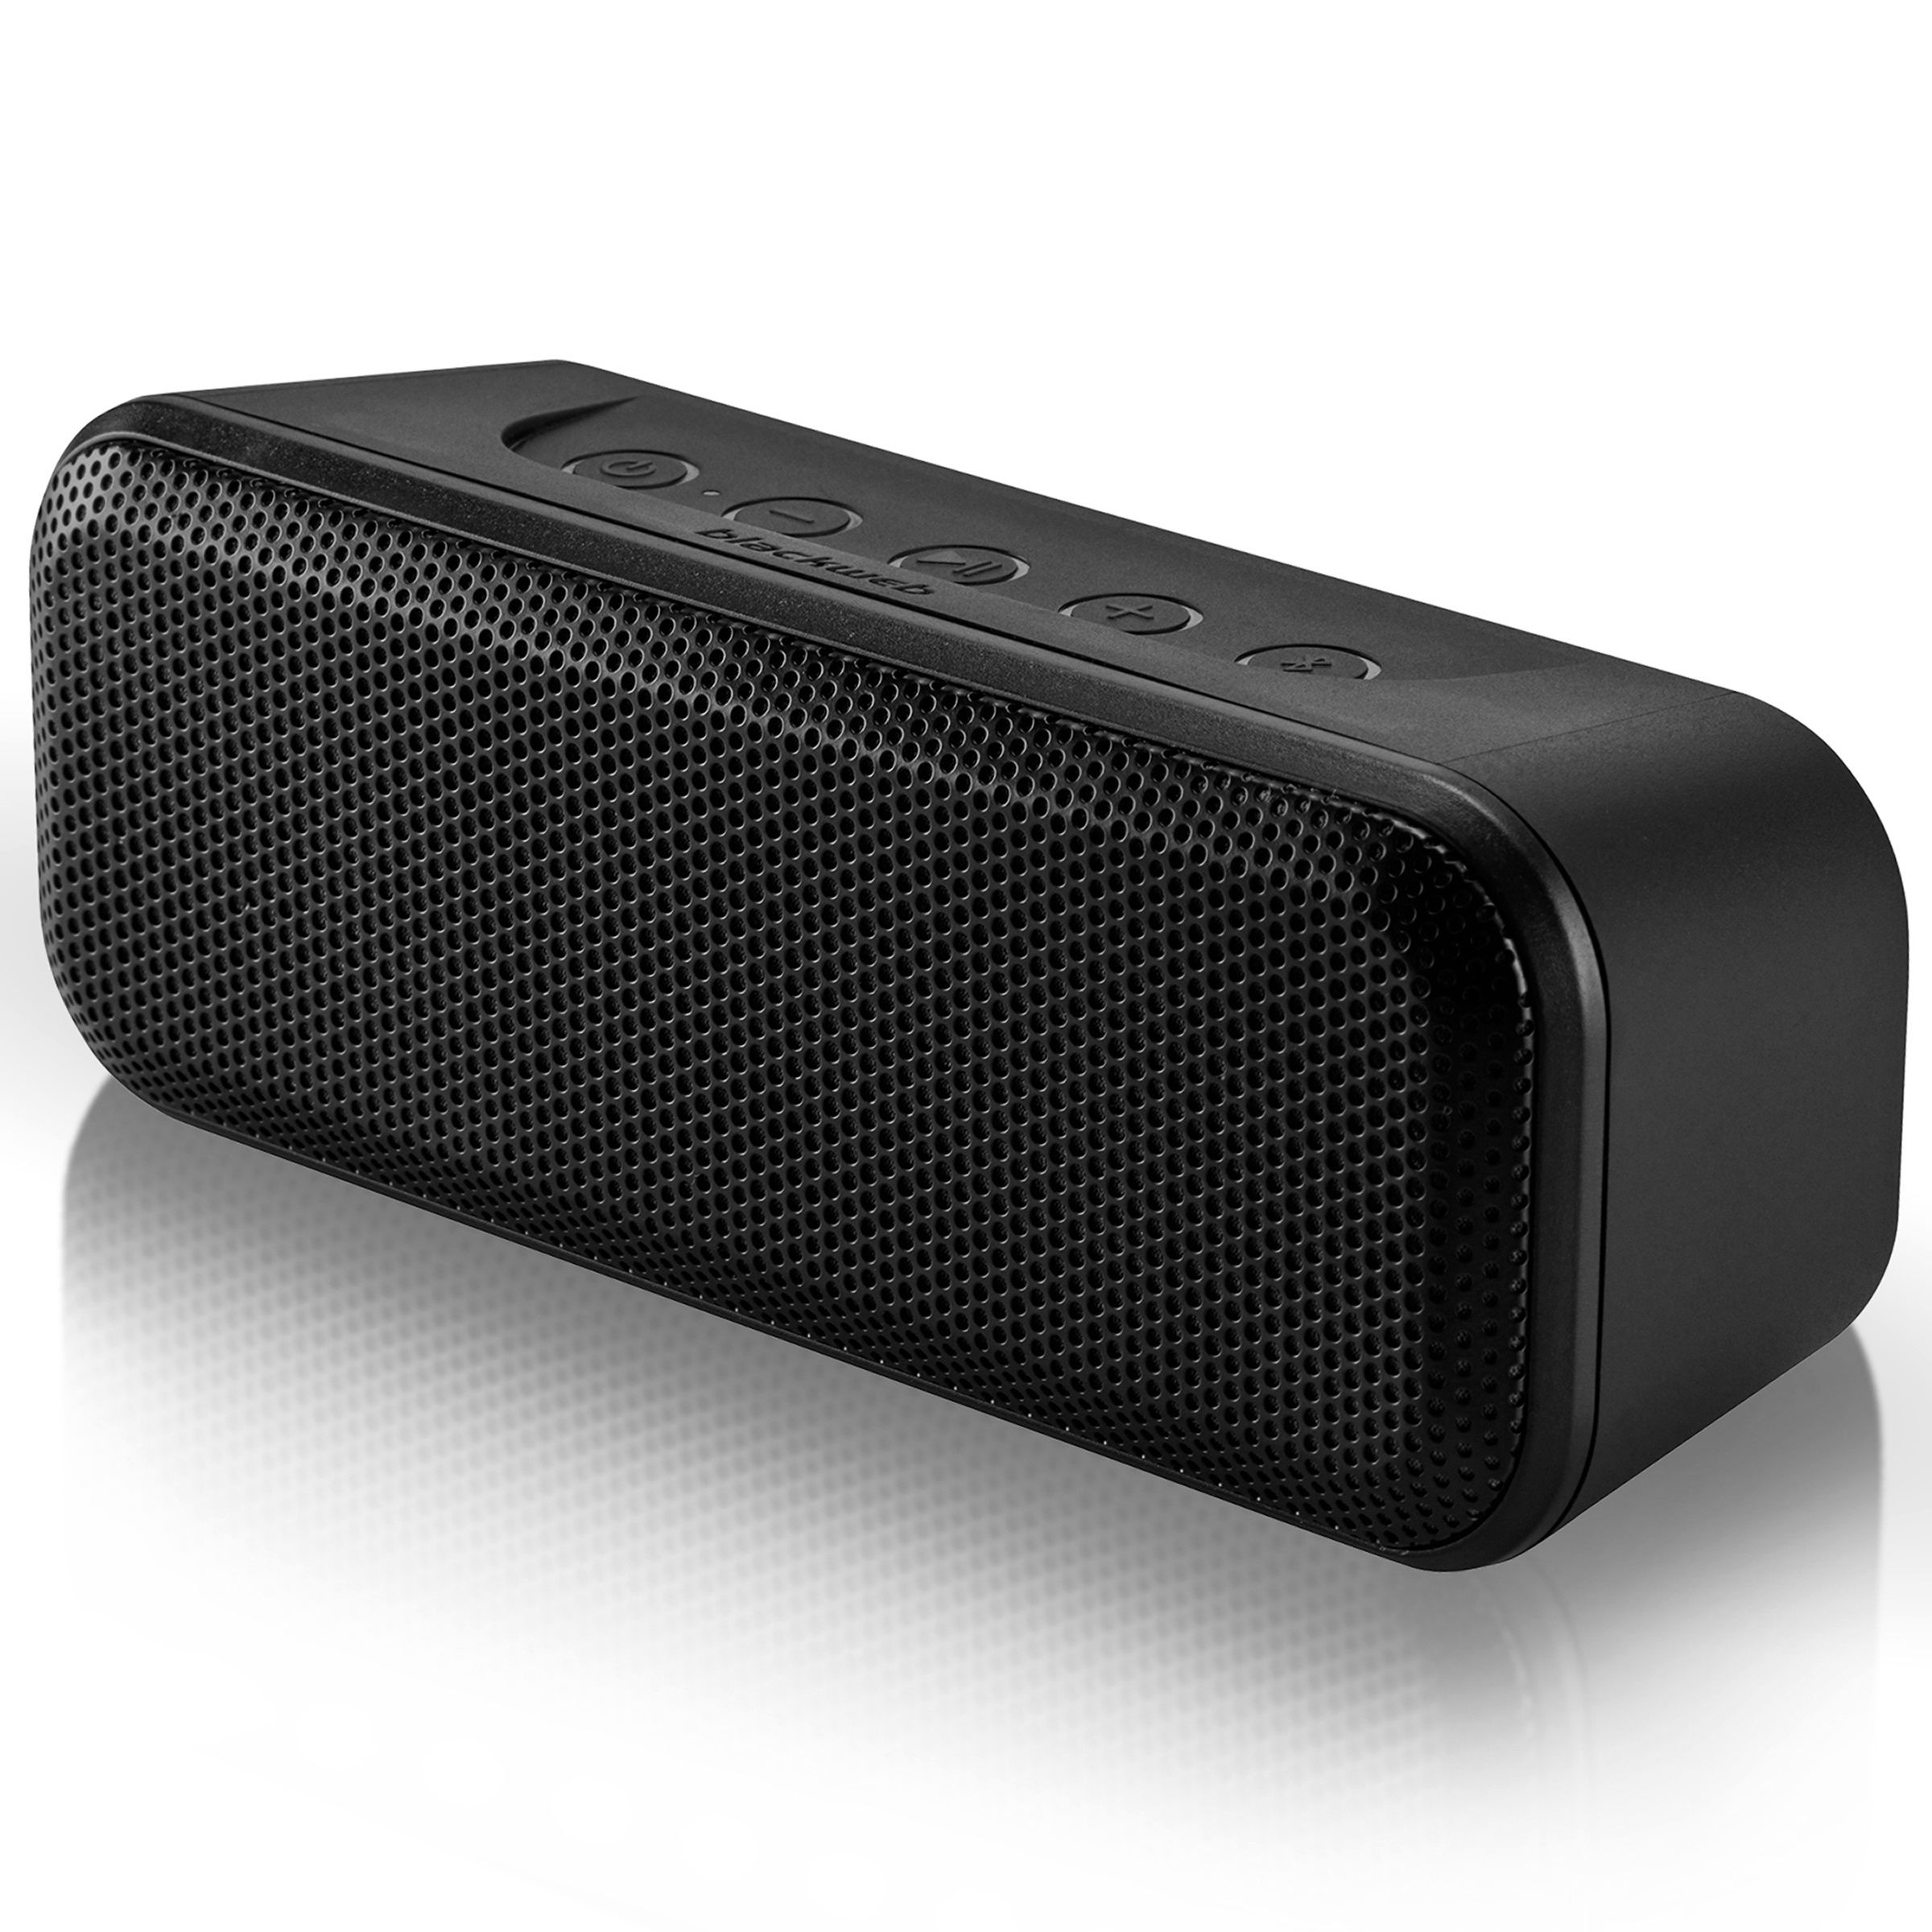 Blackweb Stereo Bluetooth Speaker, Built In Microphone and